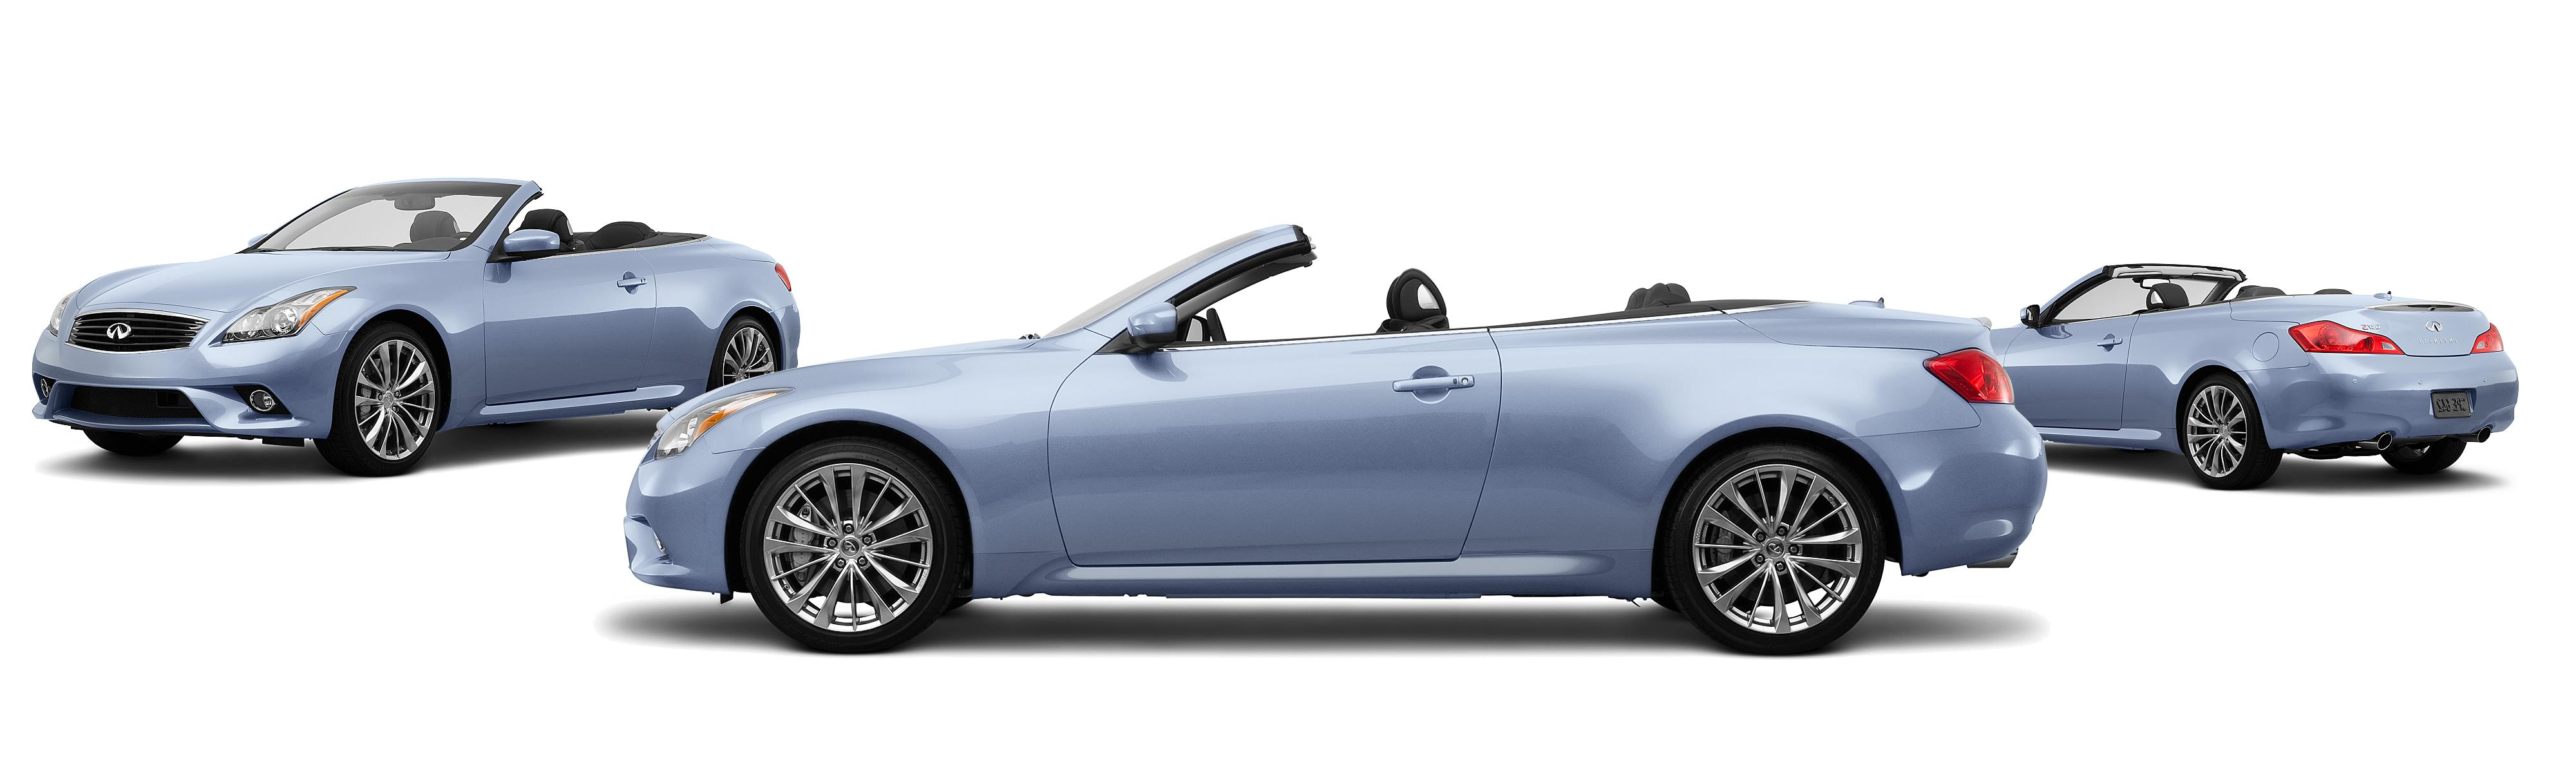 cars convertible infiniti infinity new super